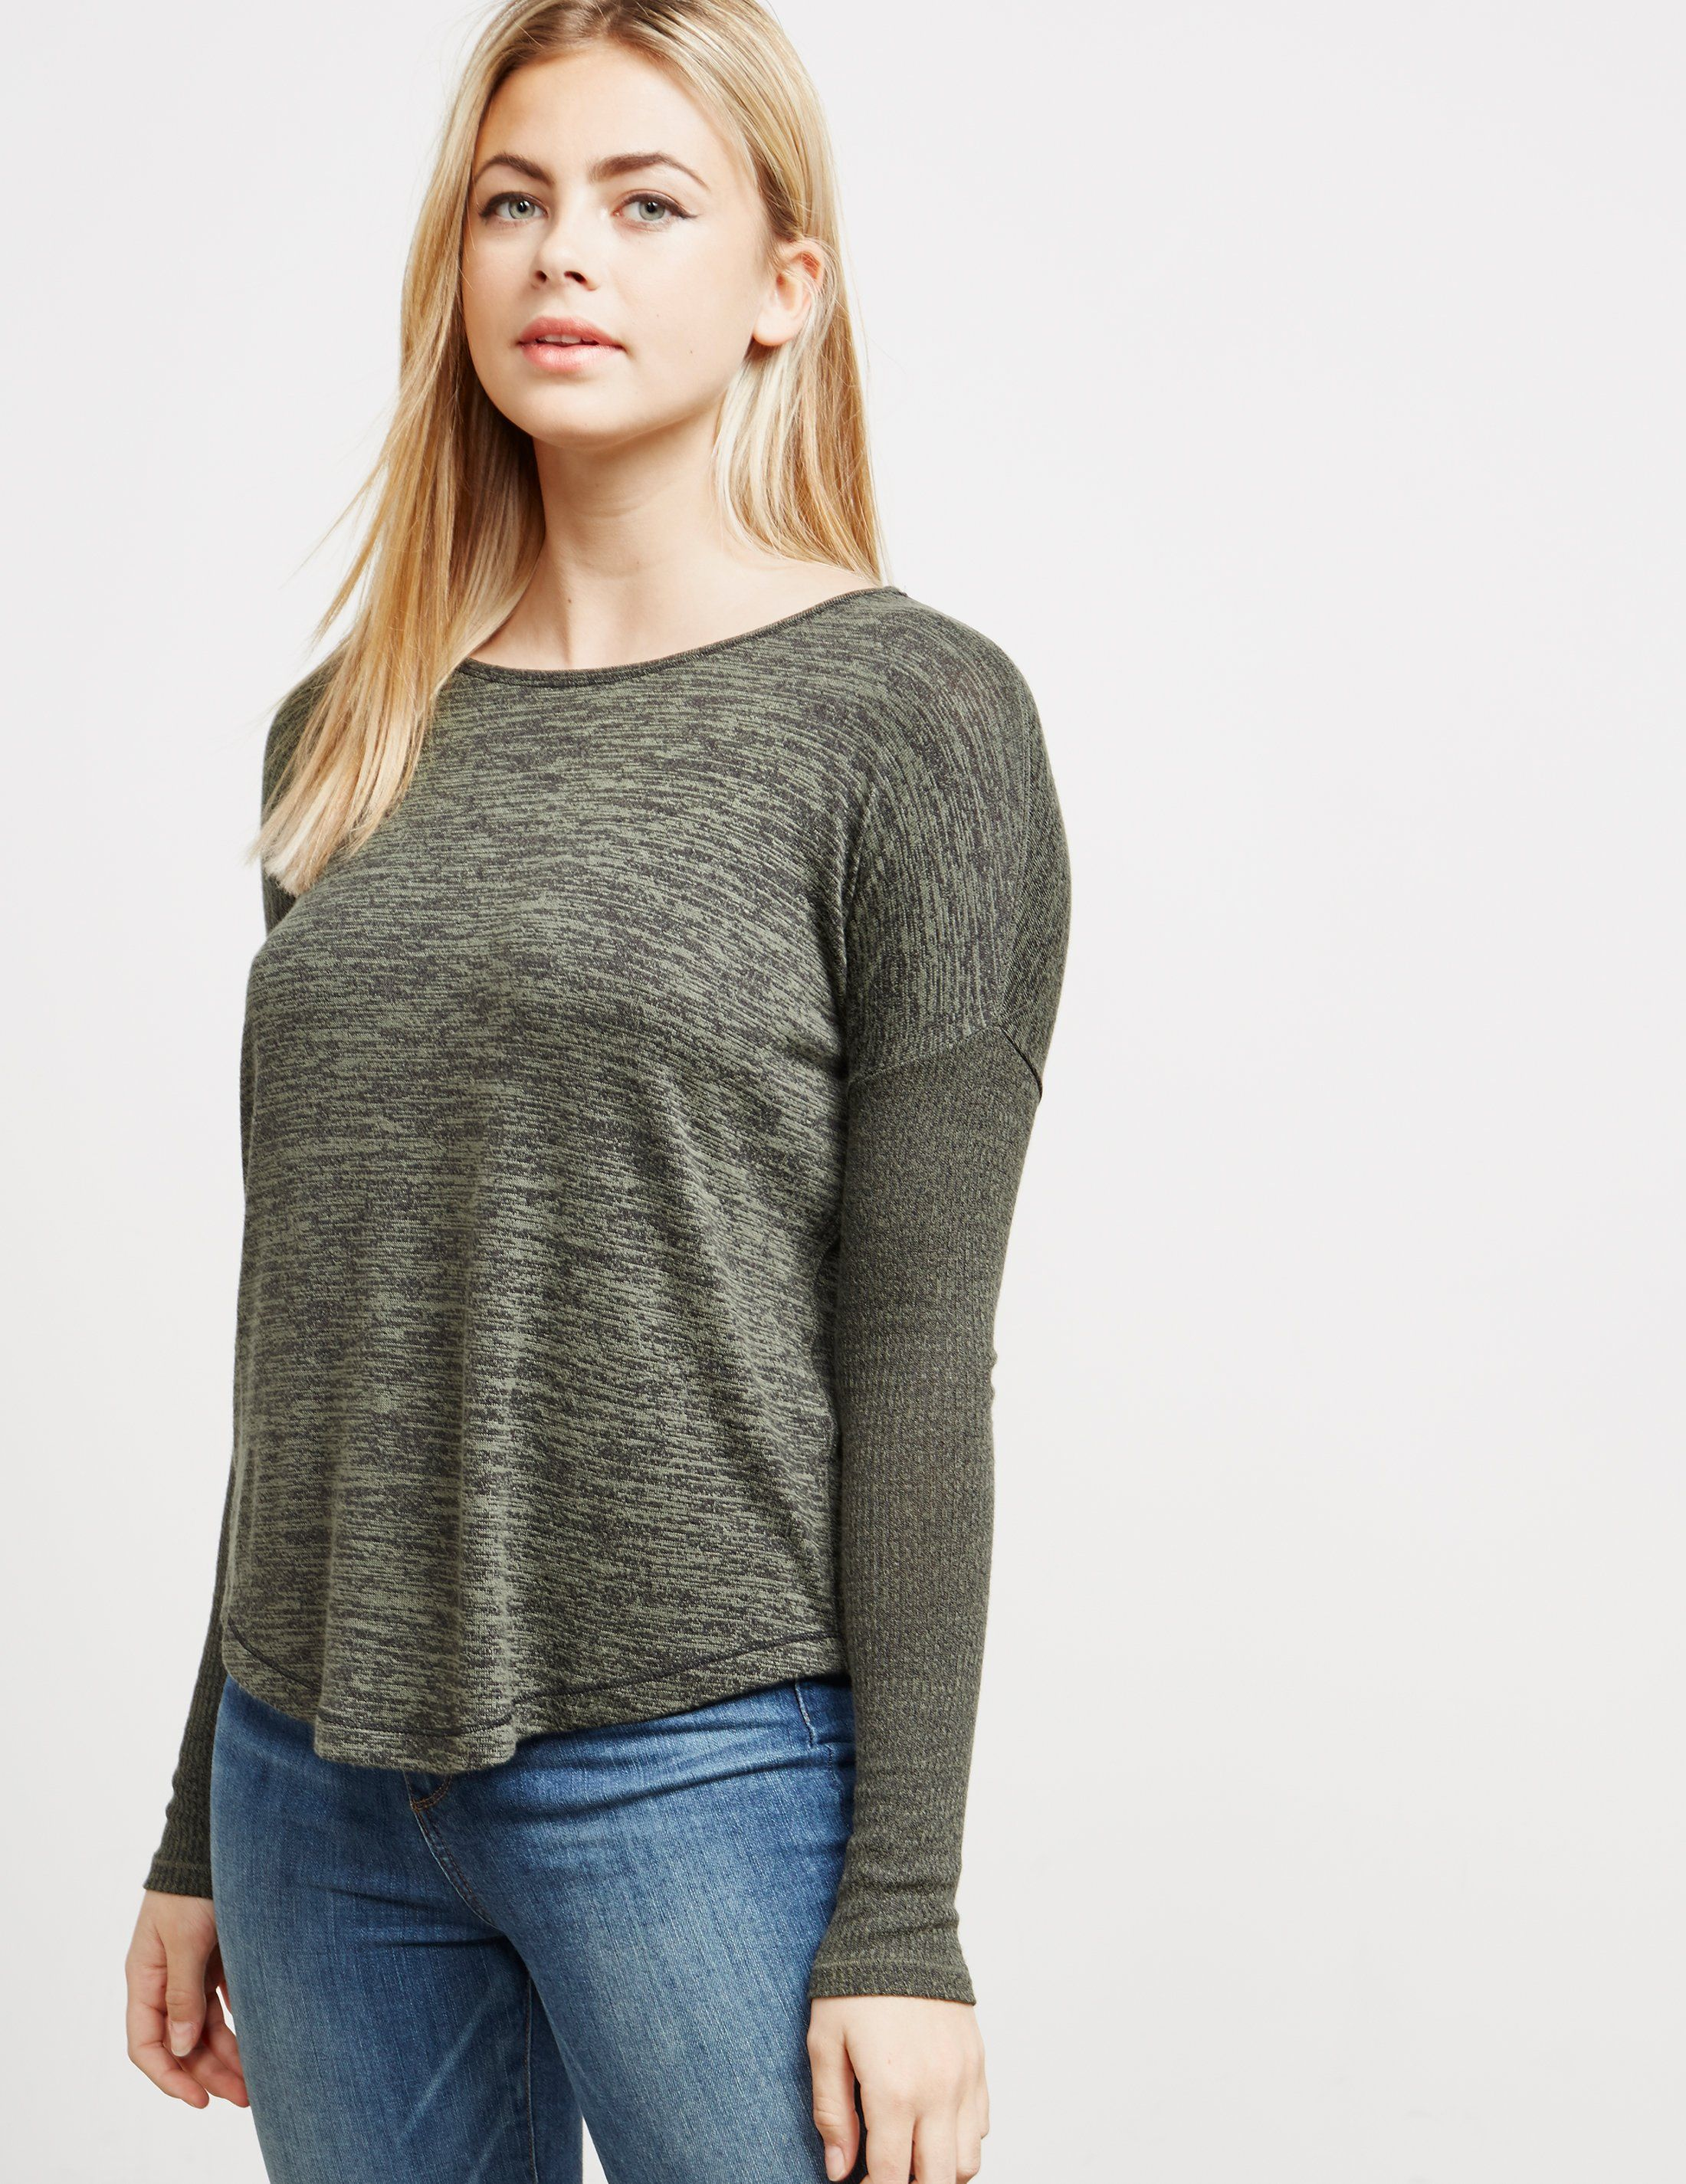 Rag & Bone Amelie Long Sleeve T-Shirt